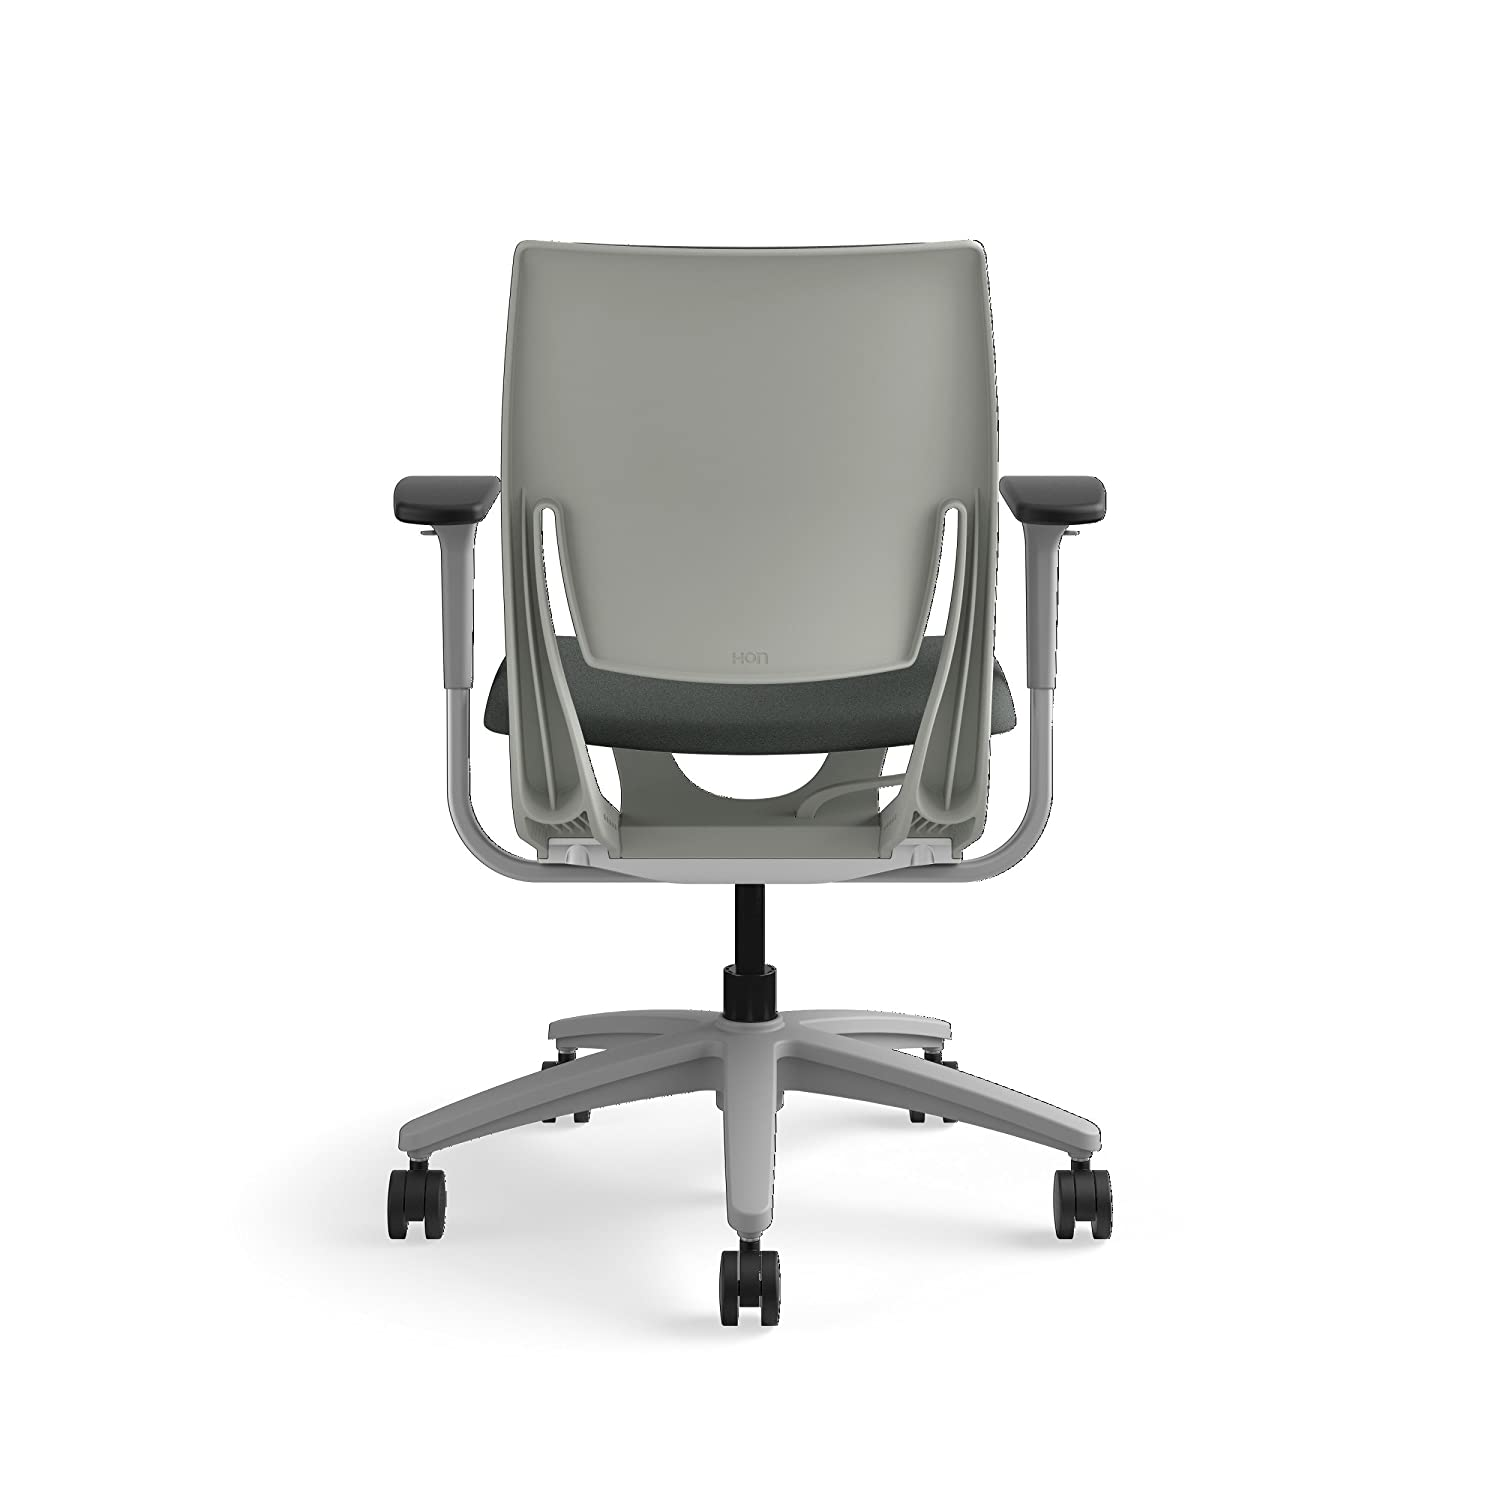 HON Purpose Mid-Back Chair with YouFit Flex Motion Fixed Arms Platinum Shell and Platinum Base Espresso Fabric The HON Company HR1W.FPLT.H.PT.CU49.PLAT